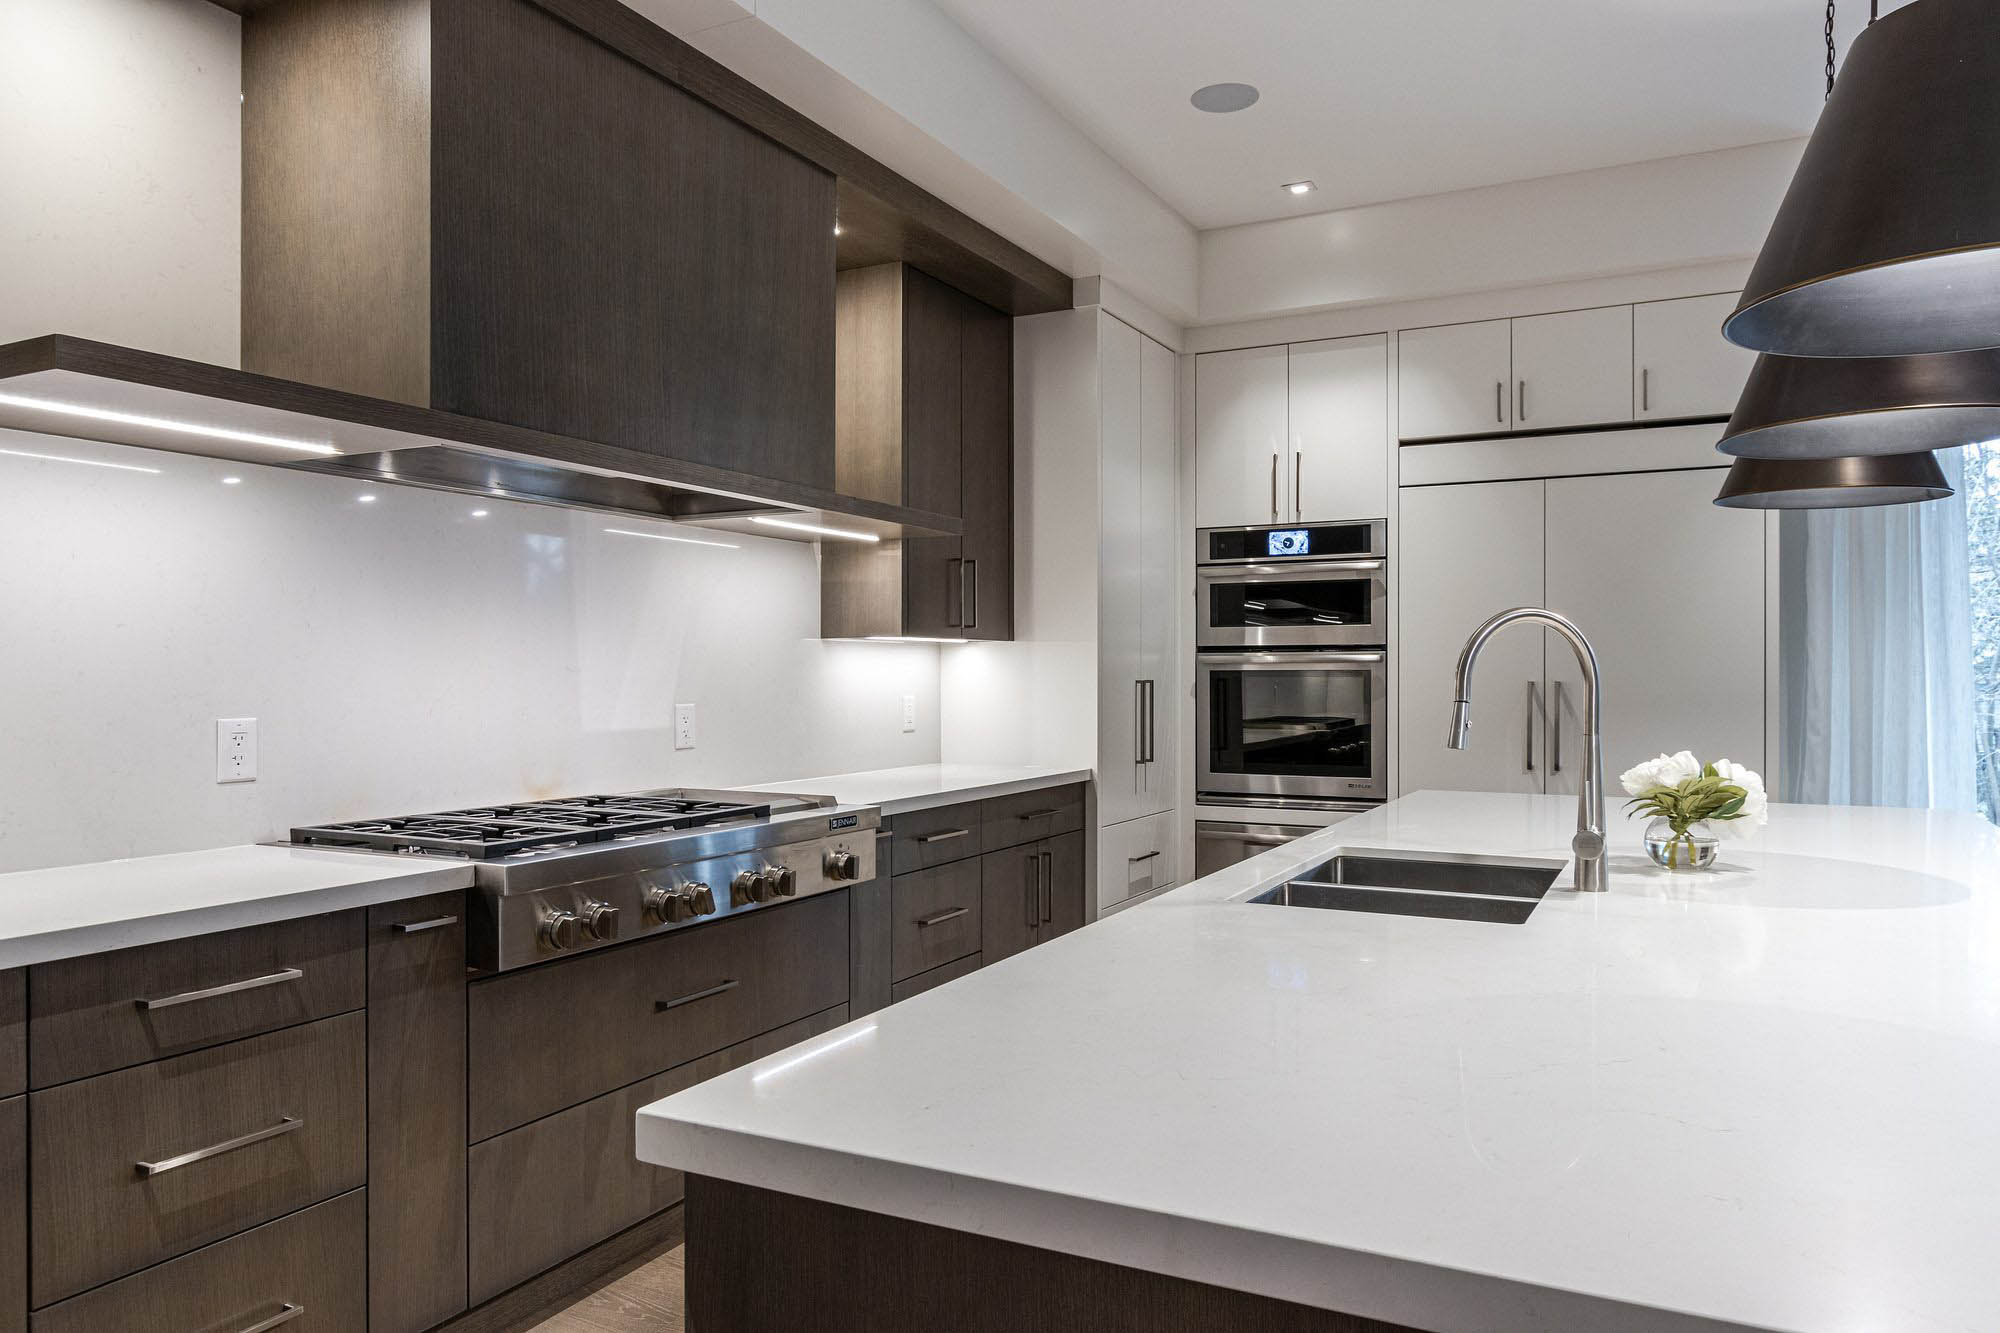 Modern kitchen featuring flat faced muted brown and white cabinets with white quartz countertops. Solid slab white quartz backsplash.